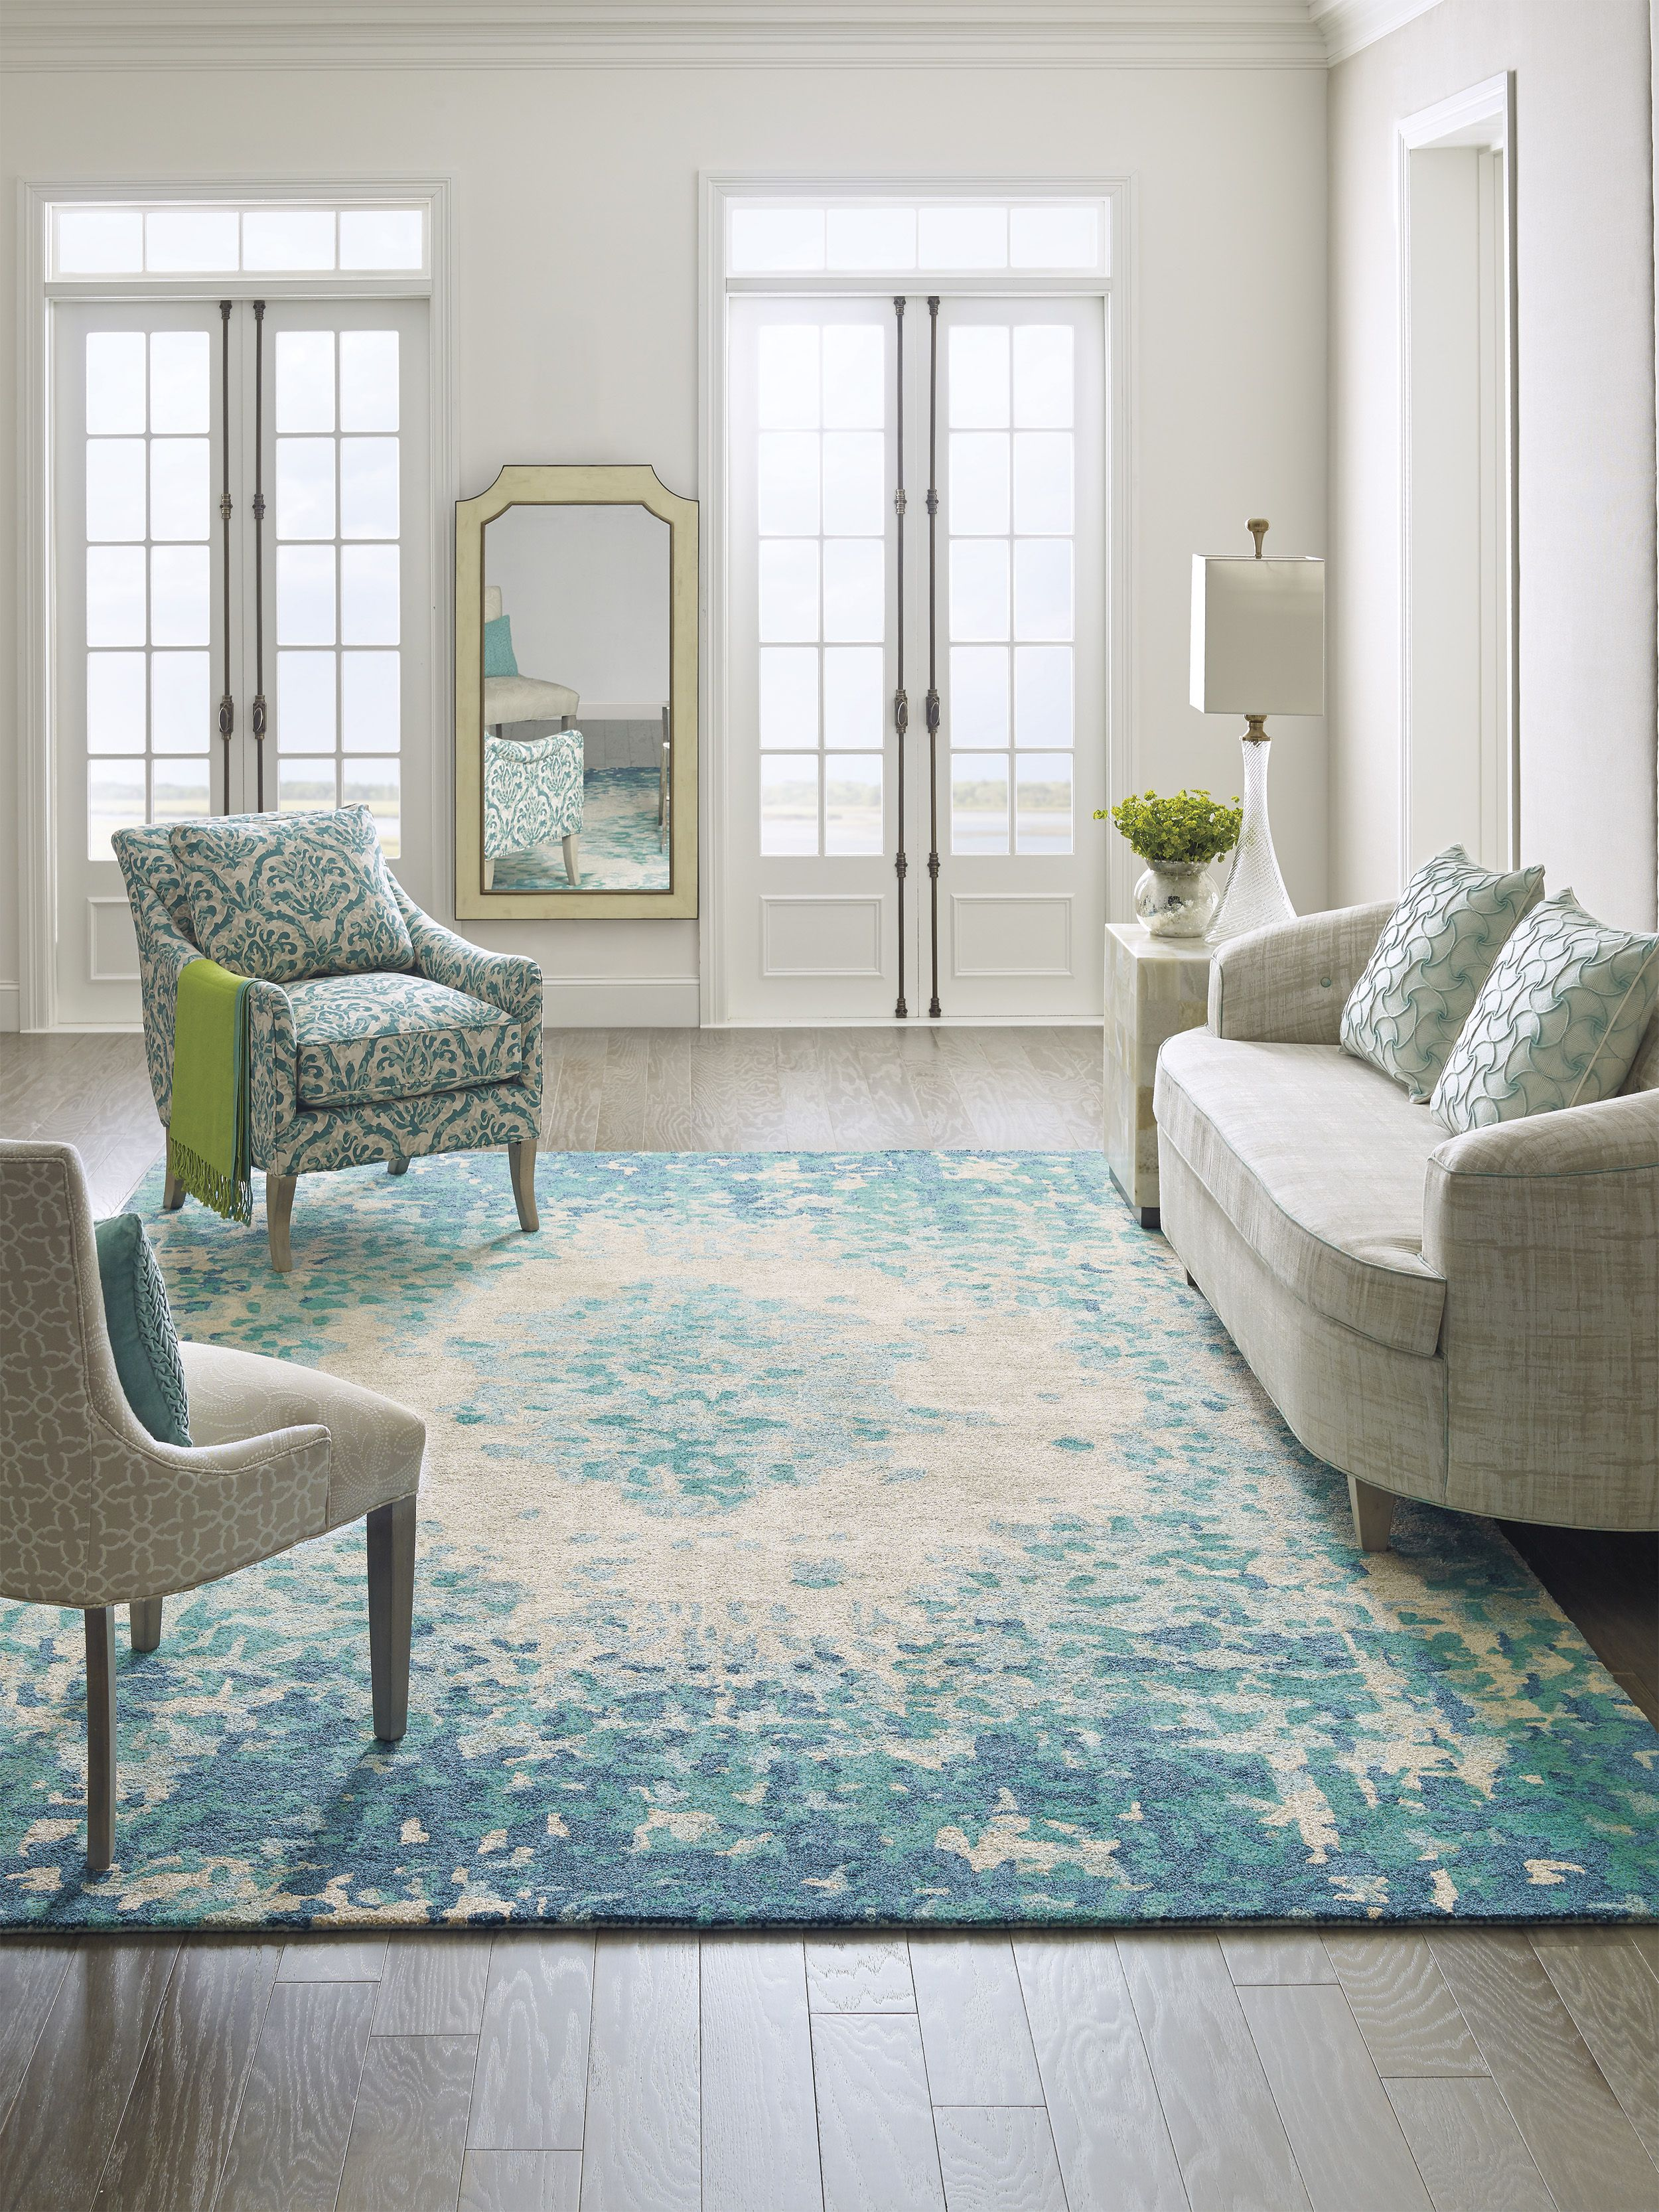 Made Of 100 Hand Spun Viscose This Decorative Looped Rug Is Luxuriously Soft And Perfe Turquoise Living Room Decor Living Room Turquoise Teal Rug Living Room Teal carpet living room